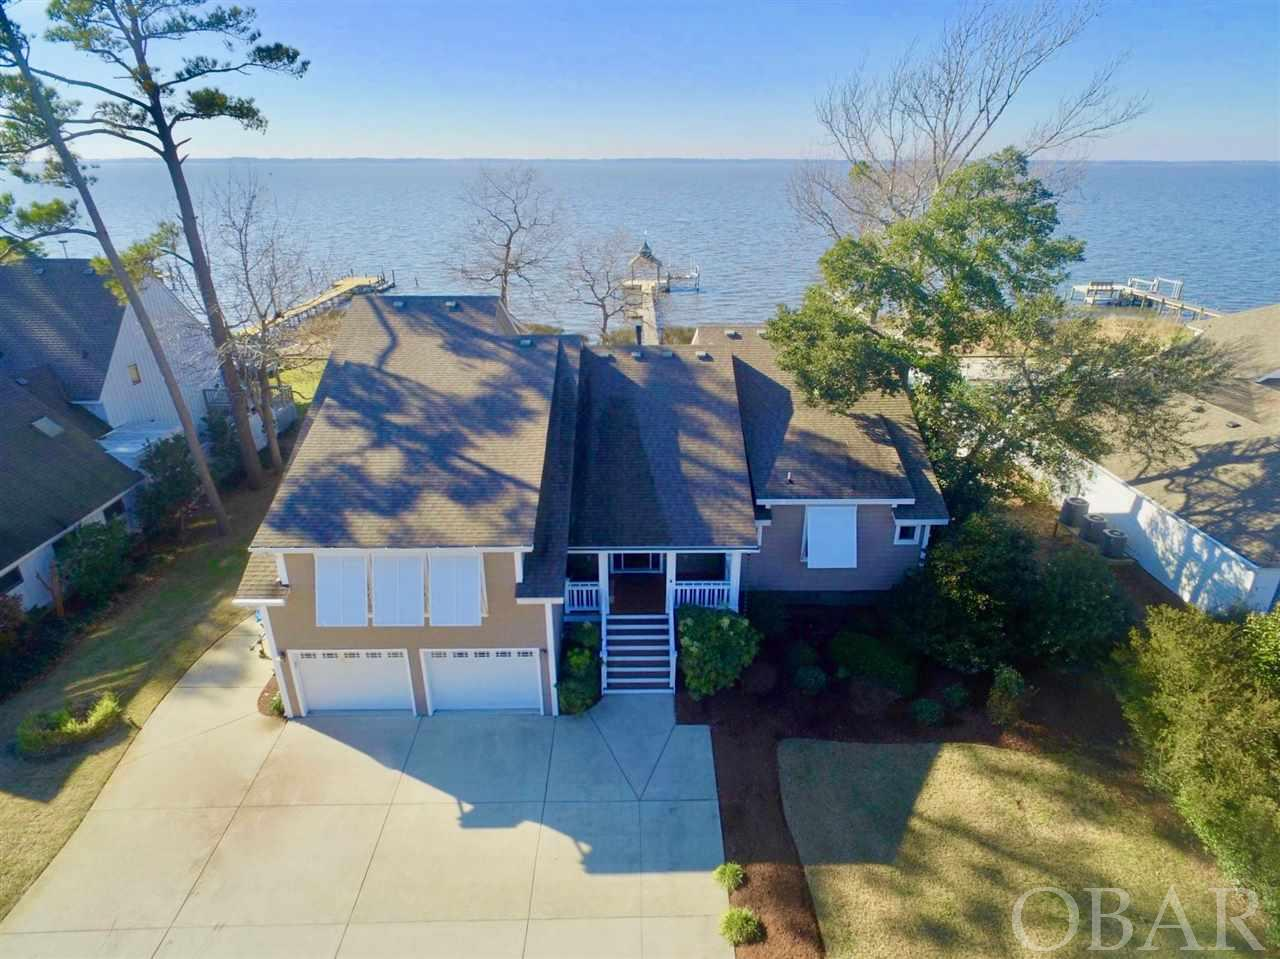 4056 Martins Point Road, Kitty Hawk, NC 27949, 3 Bedrooms Bedrooms, ,3 BathroomsBathrooms,Residential,For sale,Martins Point Road,103337